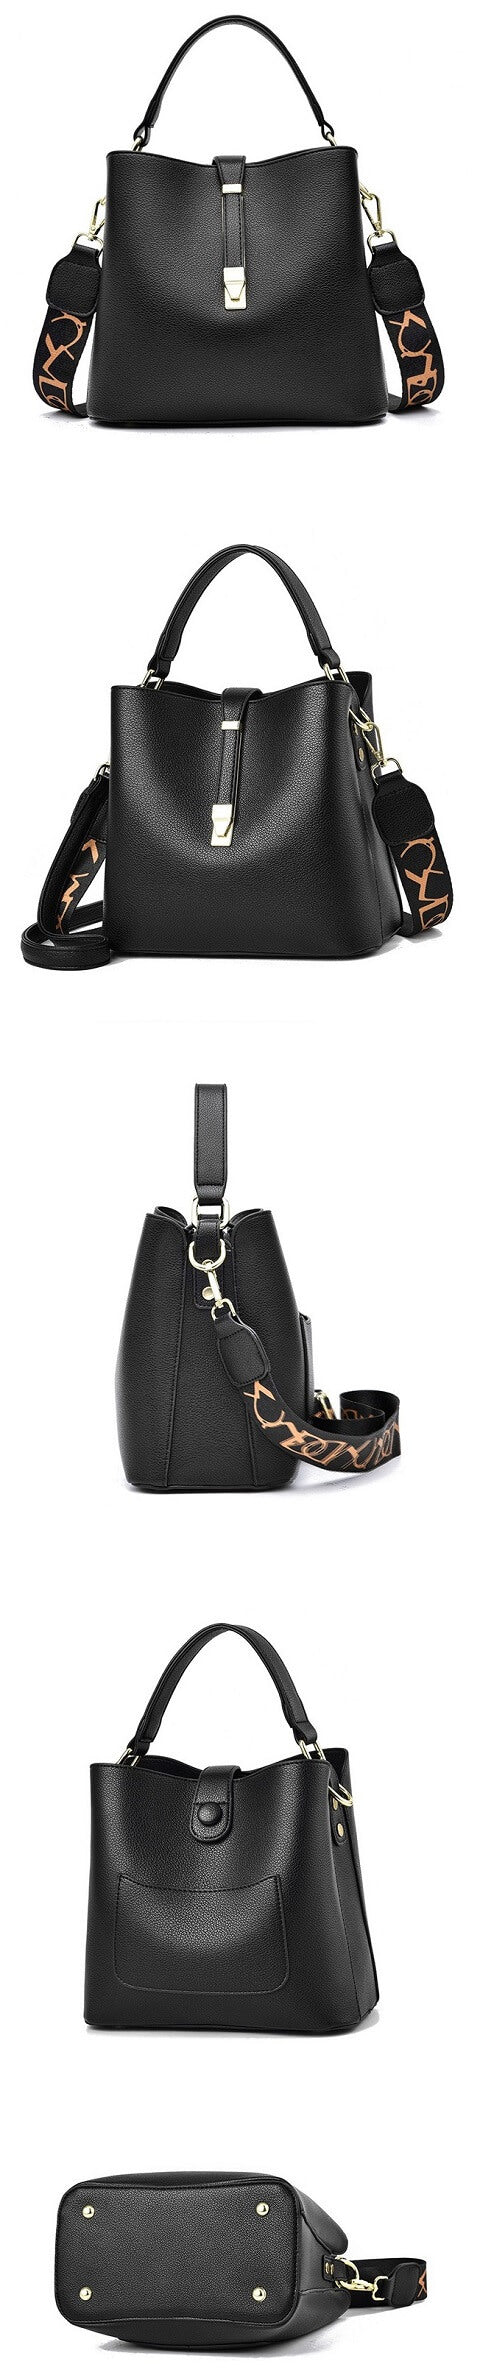 Melina Hawkins handbag can be transformed from a crossbody bag to a top-handle bag and bucket bag to suit your ensembles.